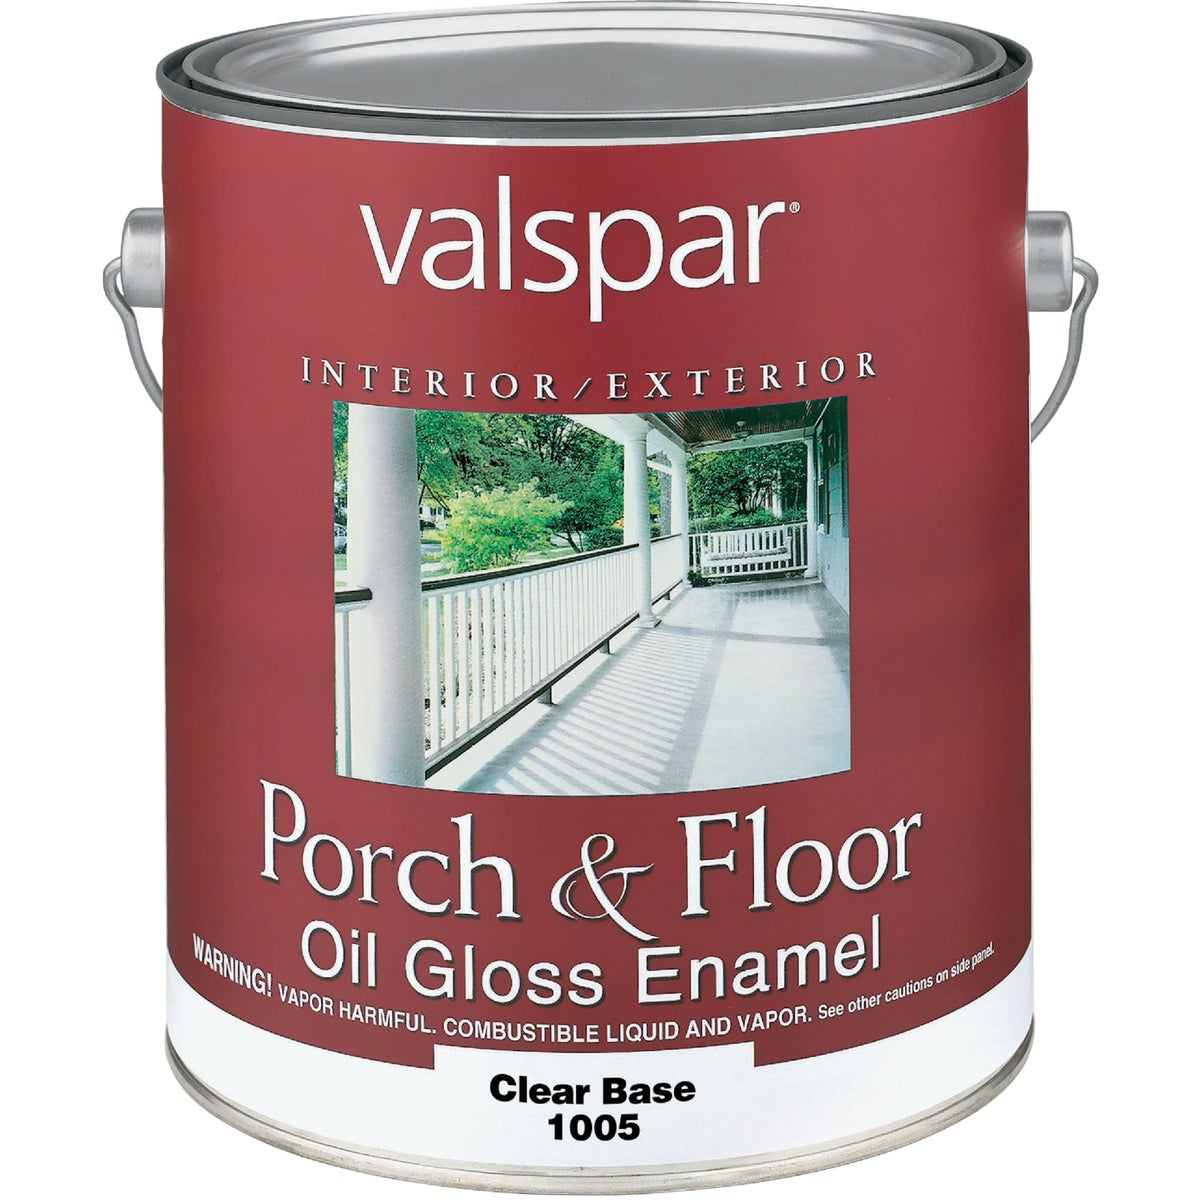 CLR BS OIL FLOOR ENAMEL